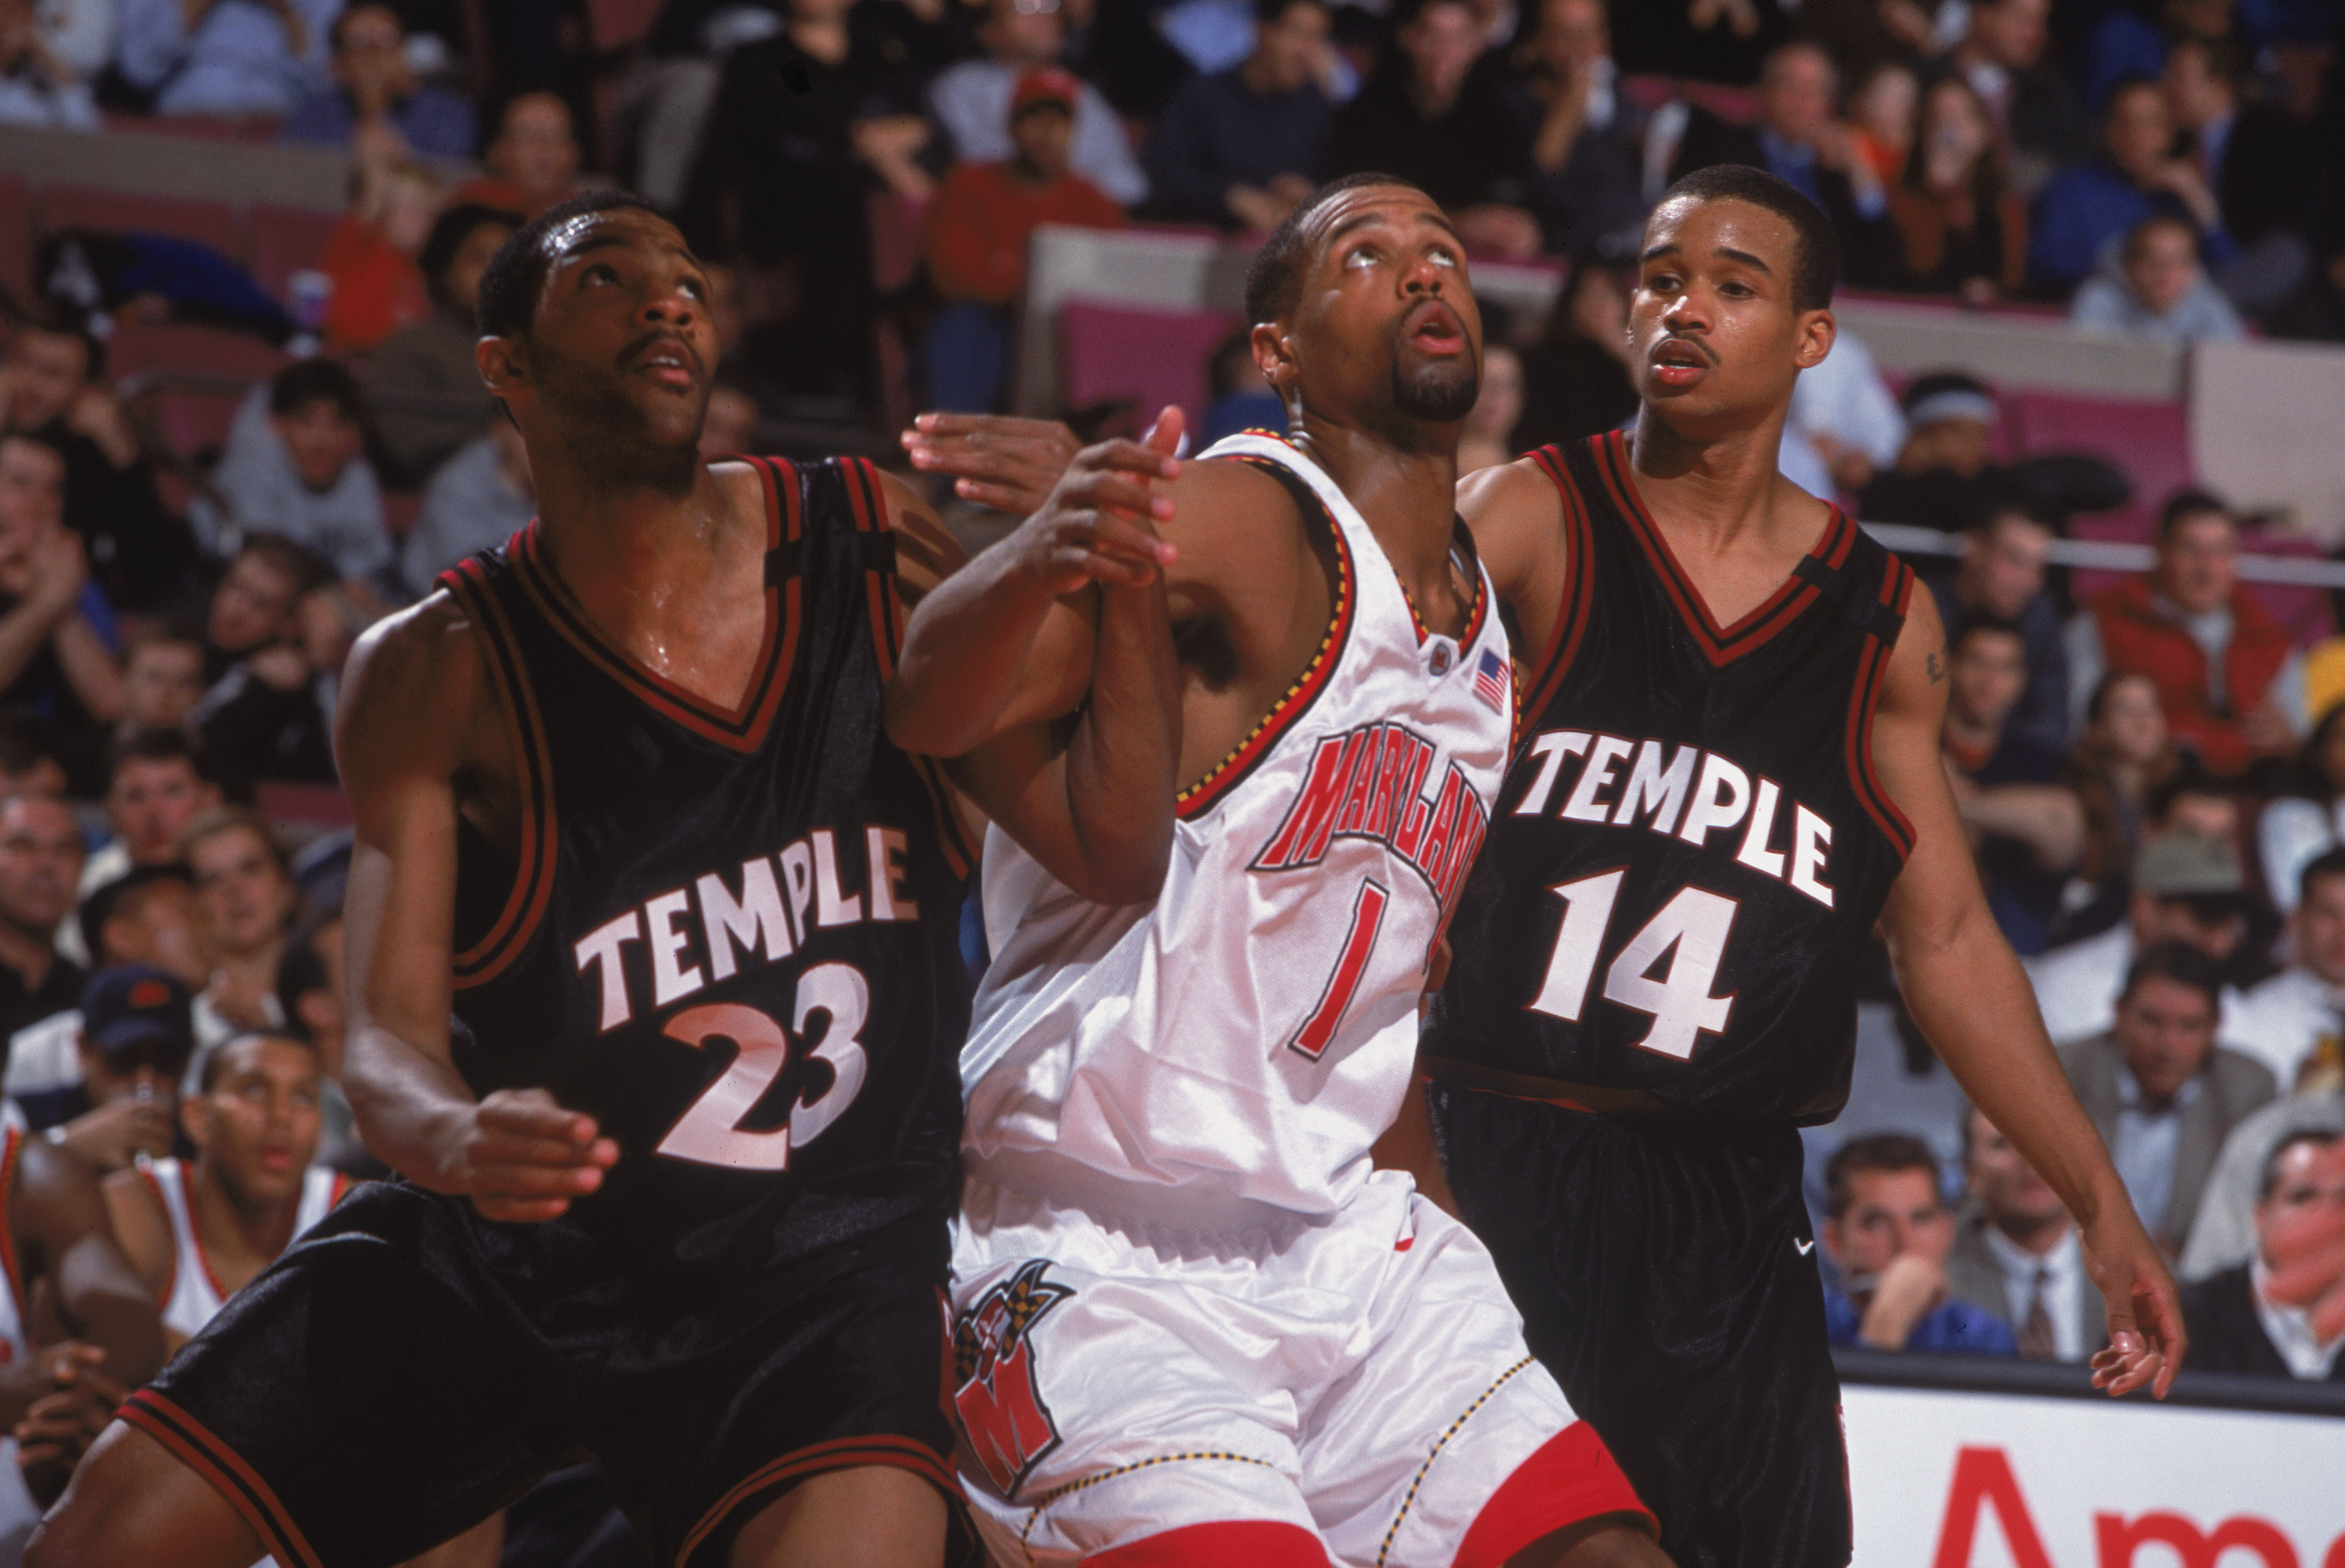 9 Nov 2001:  Byron Mouton # of the Maryland Terrapins gets ready to move for the rebound with Alex Wesby #3 of the Temple Owls during the IKON Classic at Madison Square Garden in New York, New York. The Terrapins defeated the Owls 82-74.Mandatory Credit: